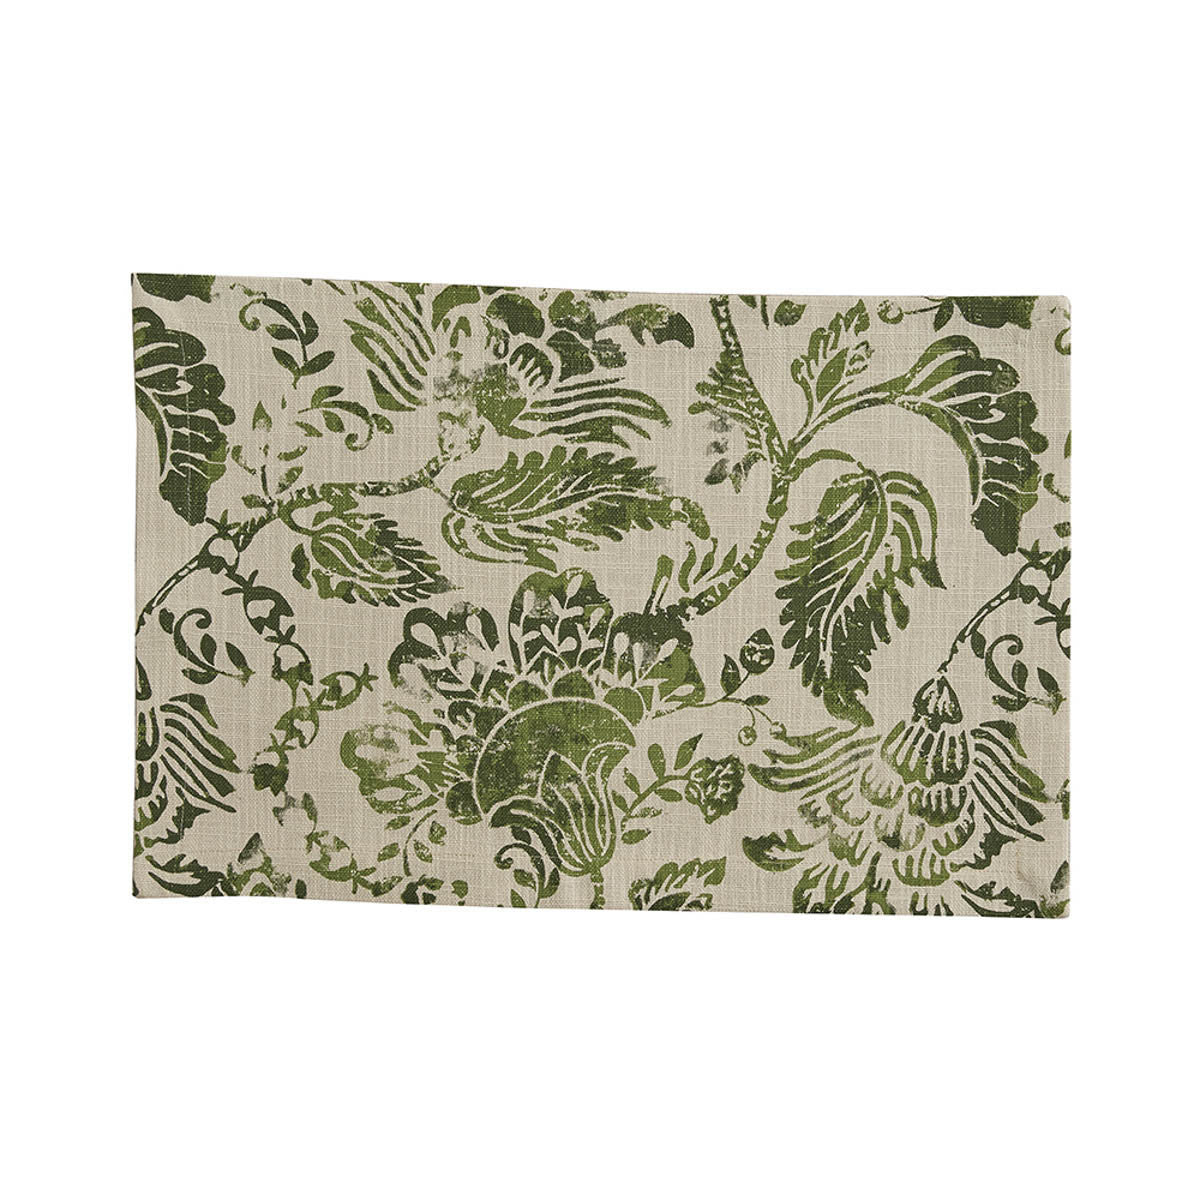 CAPRICE PLACEMAT - OLIVE